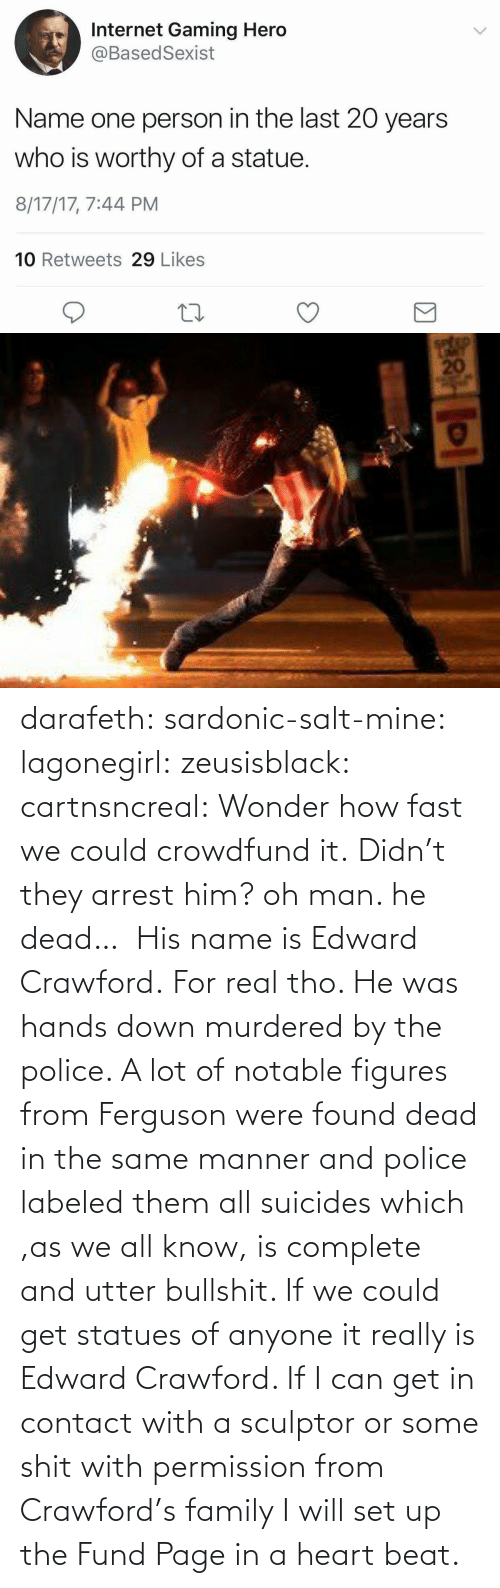 real: darafeth: sardonic-salt-mine:  lagonegirl:  zeusisblack:  cartnsncreal:   Wonder how fast we could crowdfund it.    Didn't they arrest him?  oh man. he dead…   His name is Edward Crawford.   For real tho. He was hands down murdered by the police. A lot of notable figures from Ferguson were found dead in the same manner and police labeled them all suicides which ,as we all know, is complete and utter bullshit.  If we could get statues of anyone it really is Edward Crawford. If I can get in contact with a sculptor or some shit with permission from Crawford's family I will set up the Fund Page in a heart beat.